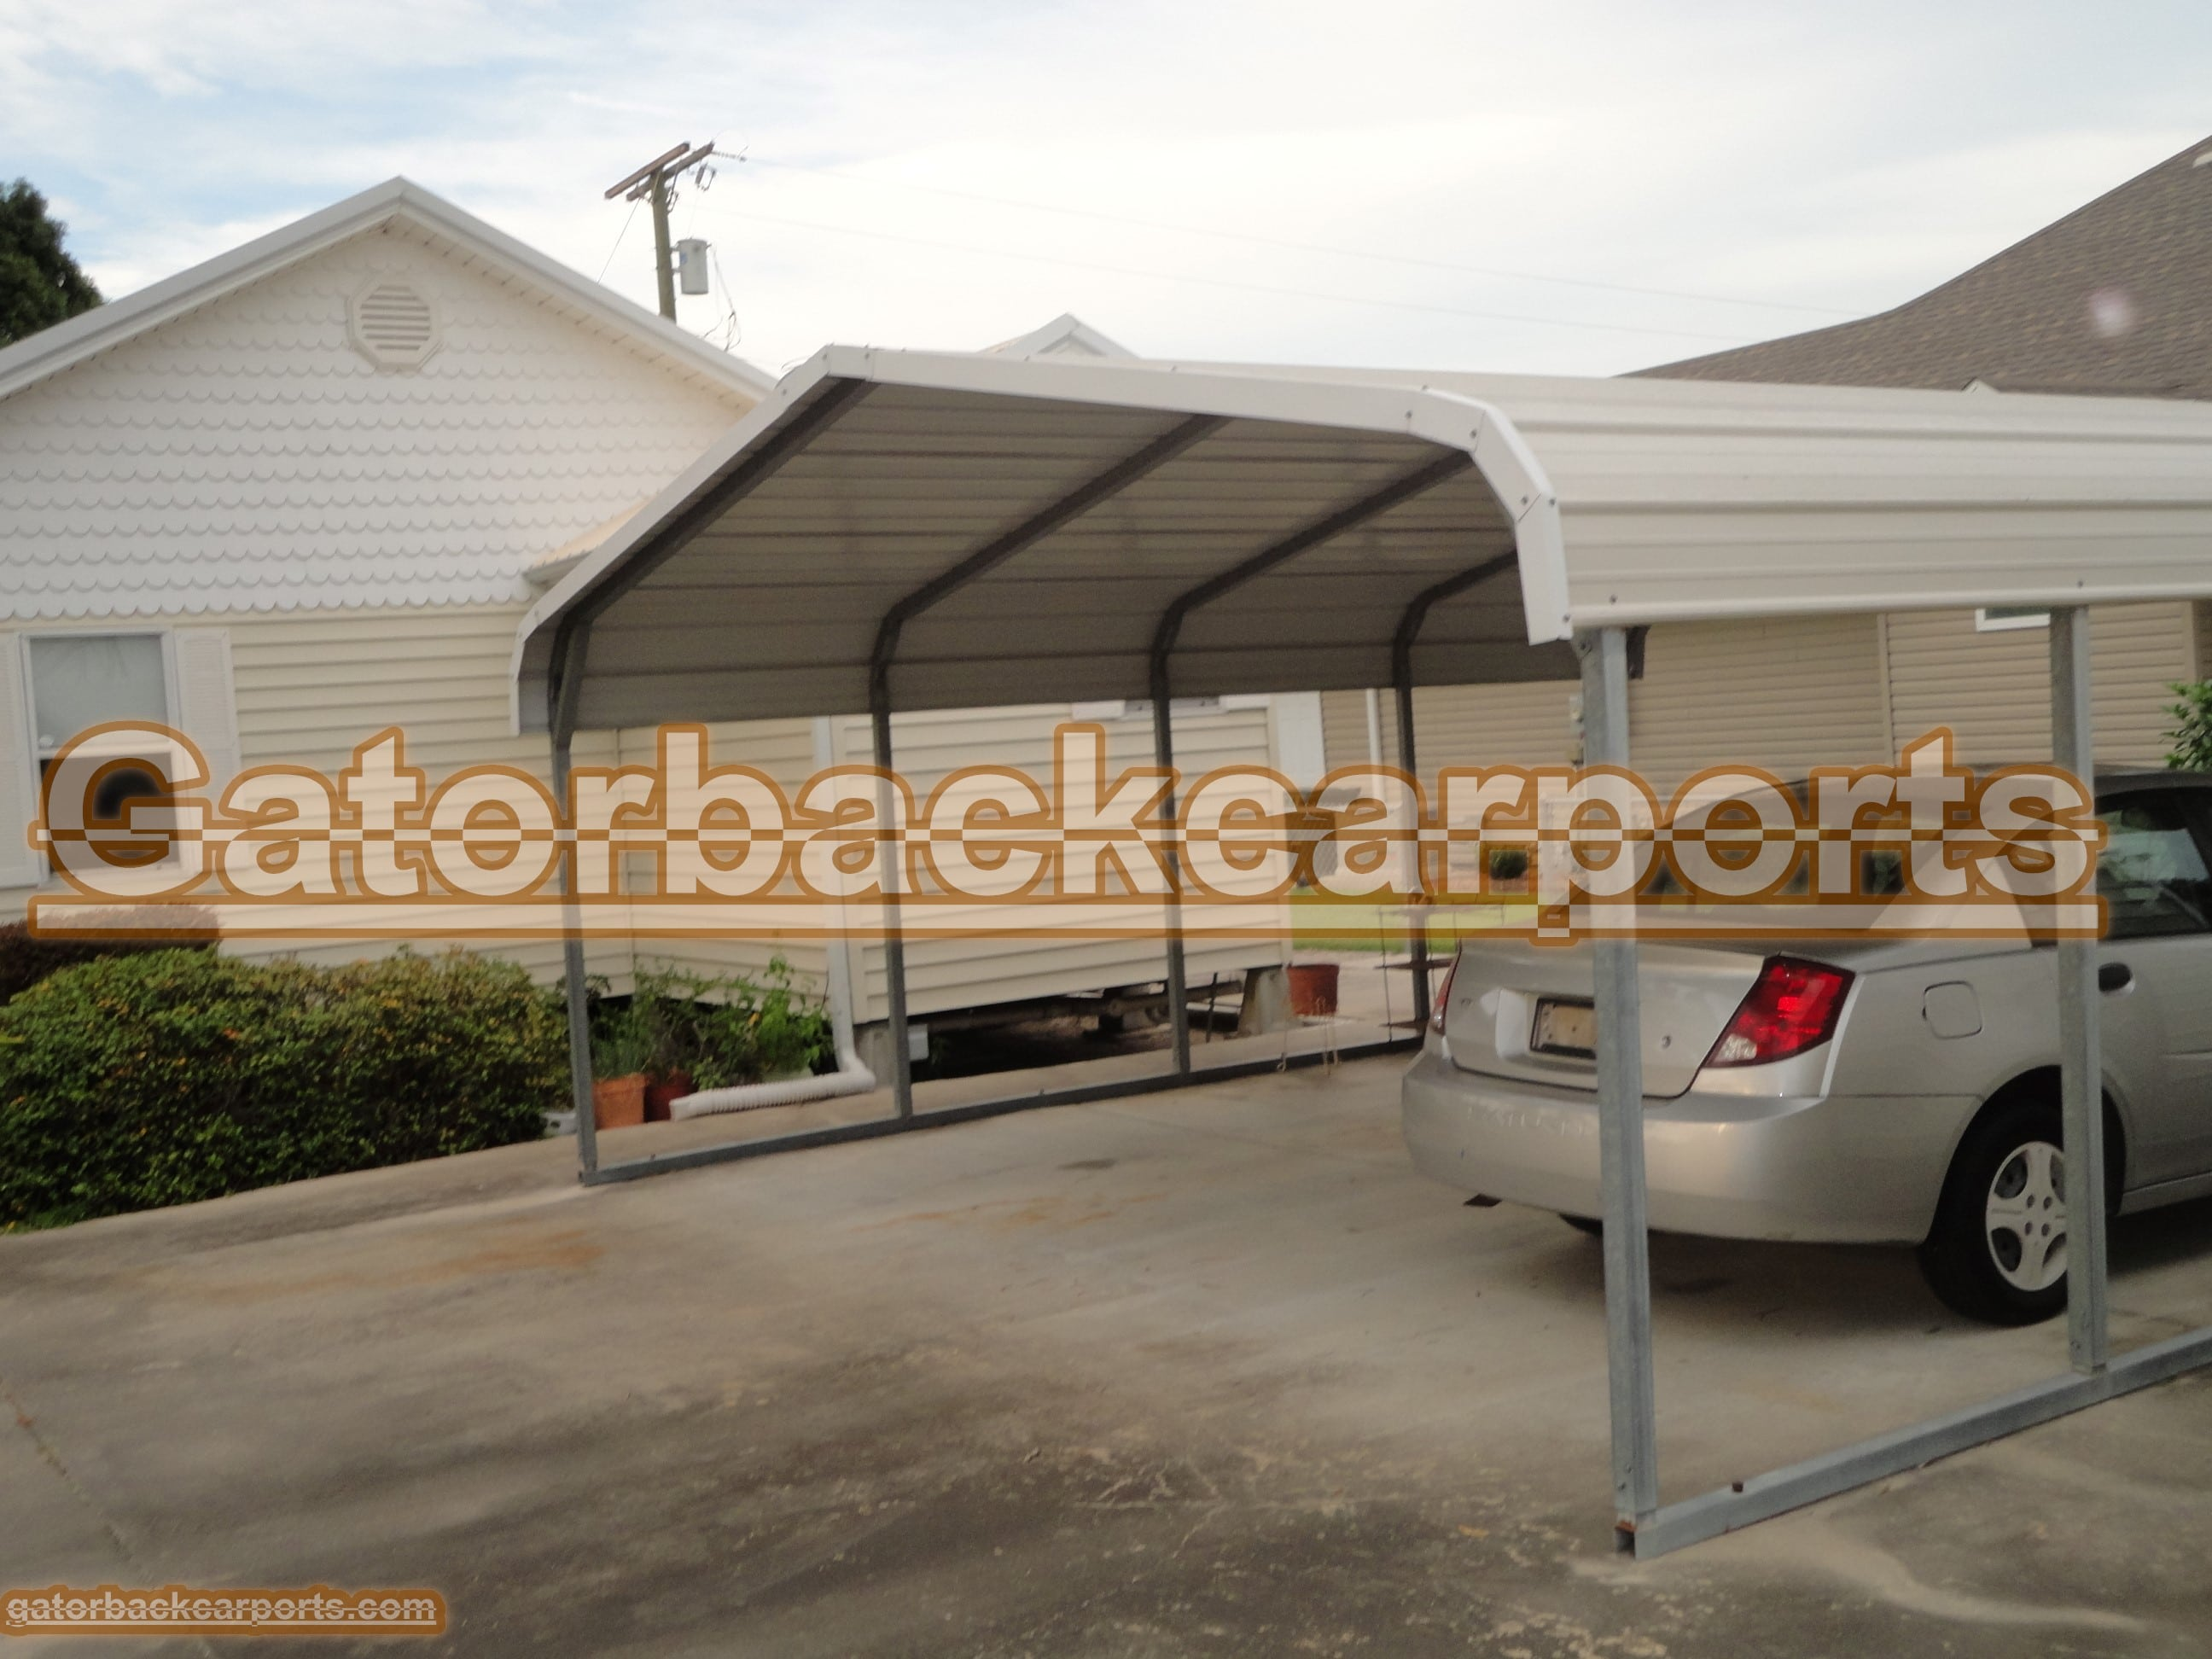 carports for sale Lakecharles LA / Louisiana Carports